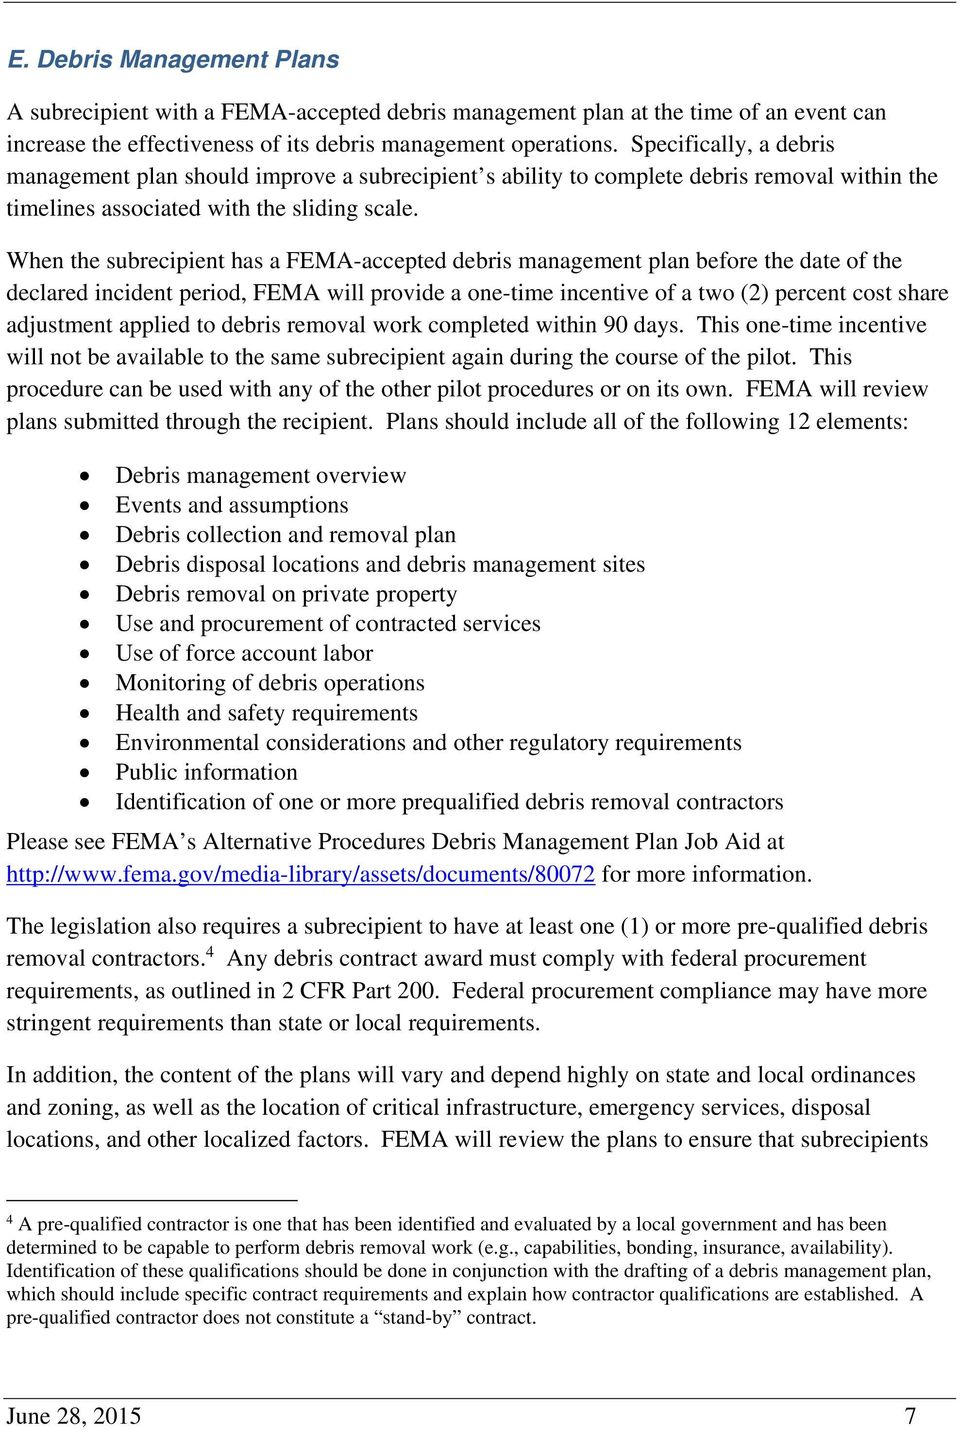 When the subrecipient has a FEMA-accepted debris management plan before the date of the declared incident period, FEMA will provide a one-time incentive of a two (2) percent cost share adjustment